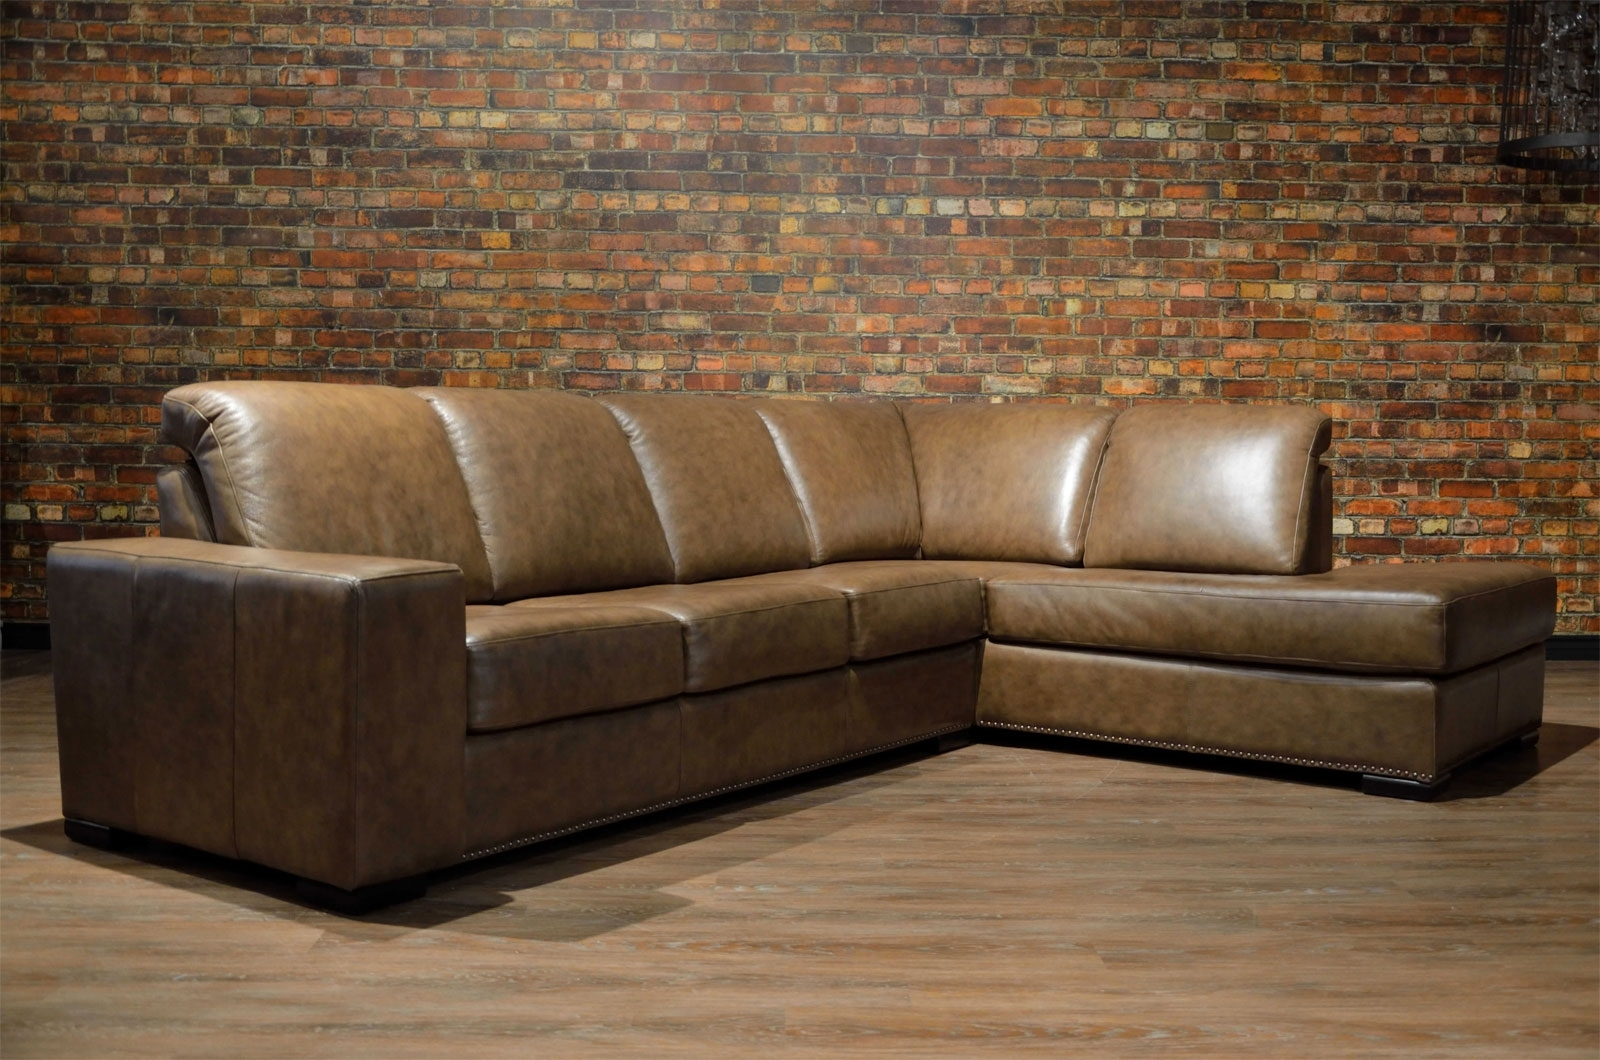 Leather Sofa & Sectional - Choose Color, Leather & Size | Boss throughout Ontario Canada Sectional Sofas (Image 6 of 10)